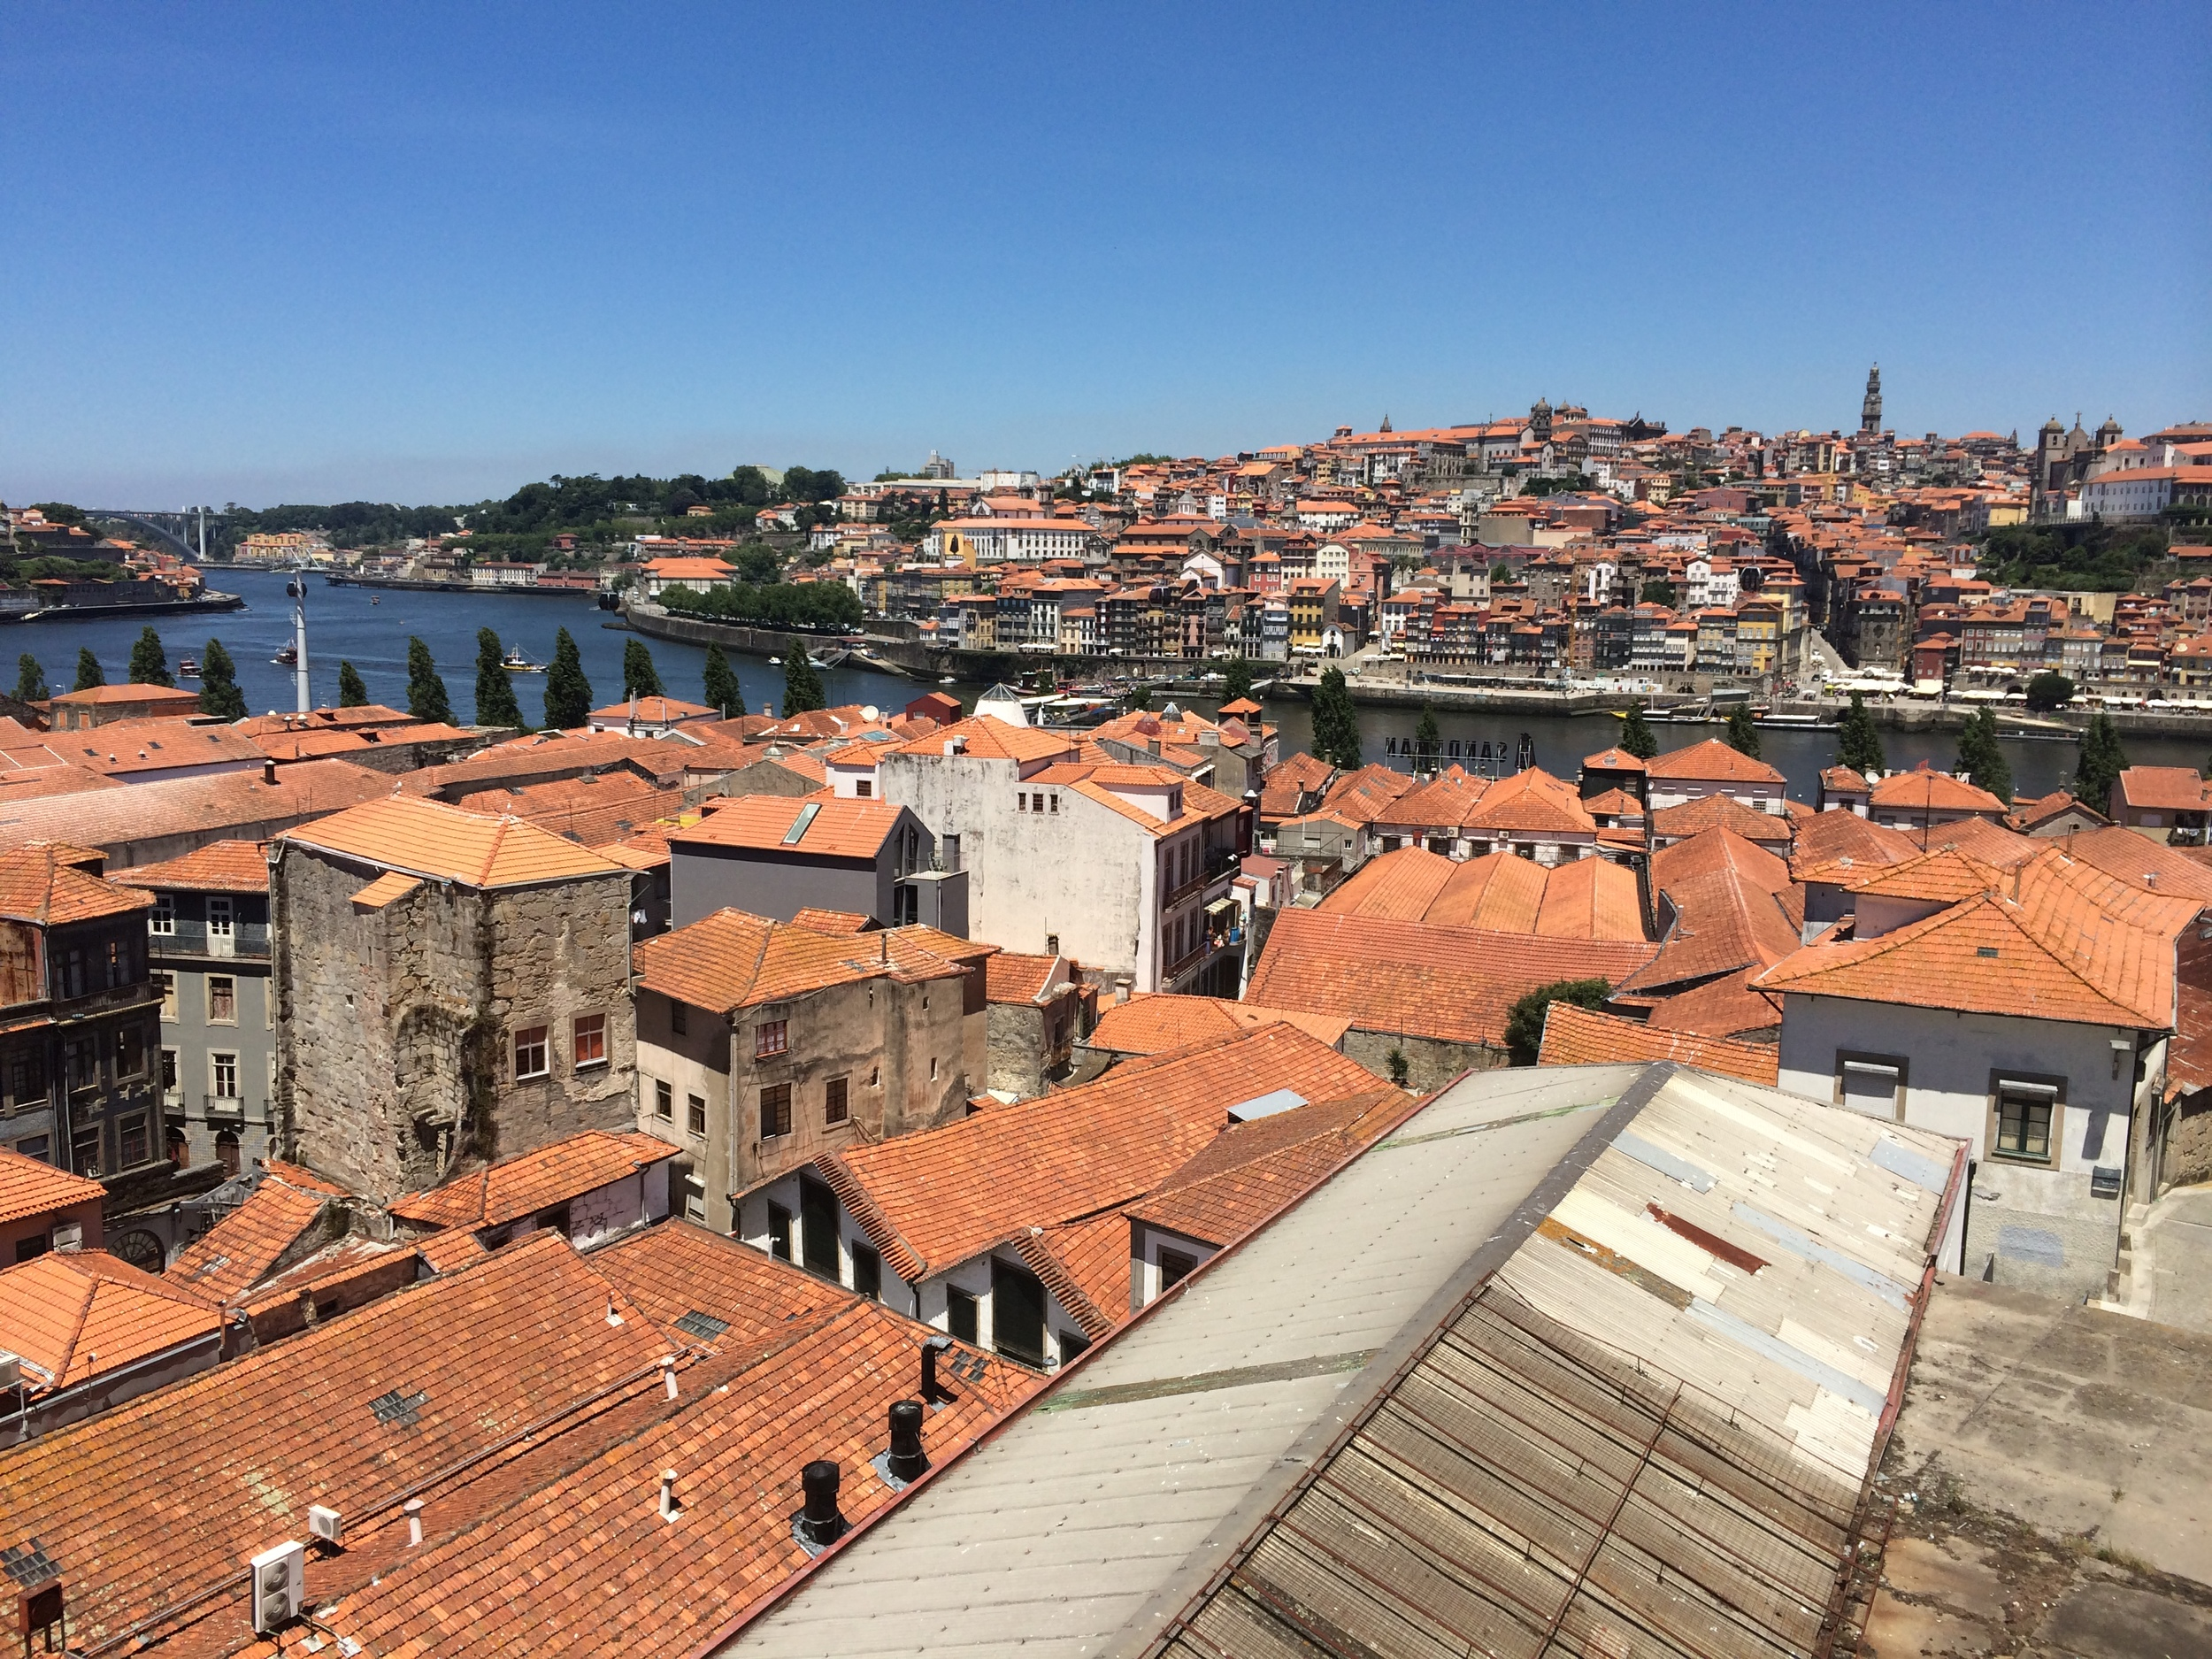 Picture of Porto from my hike through Gaia to the Taylor Fladgate Distillery.